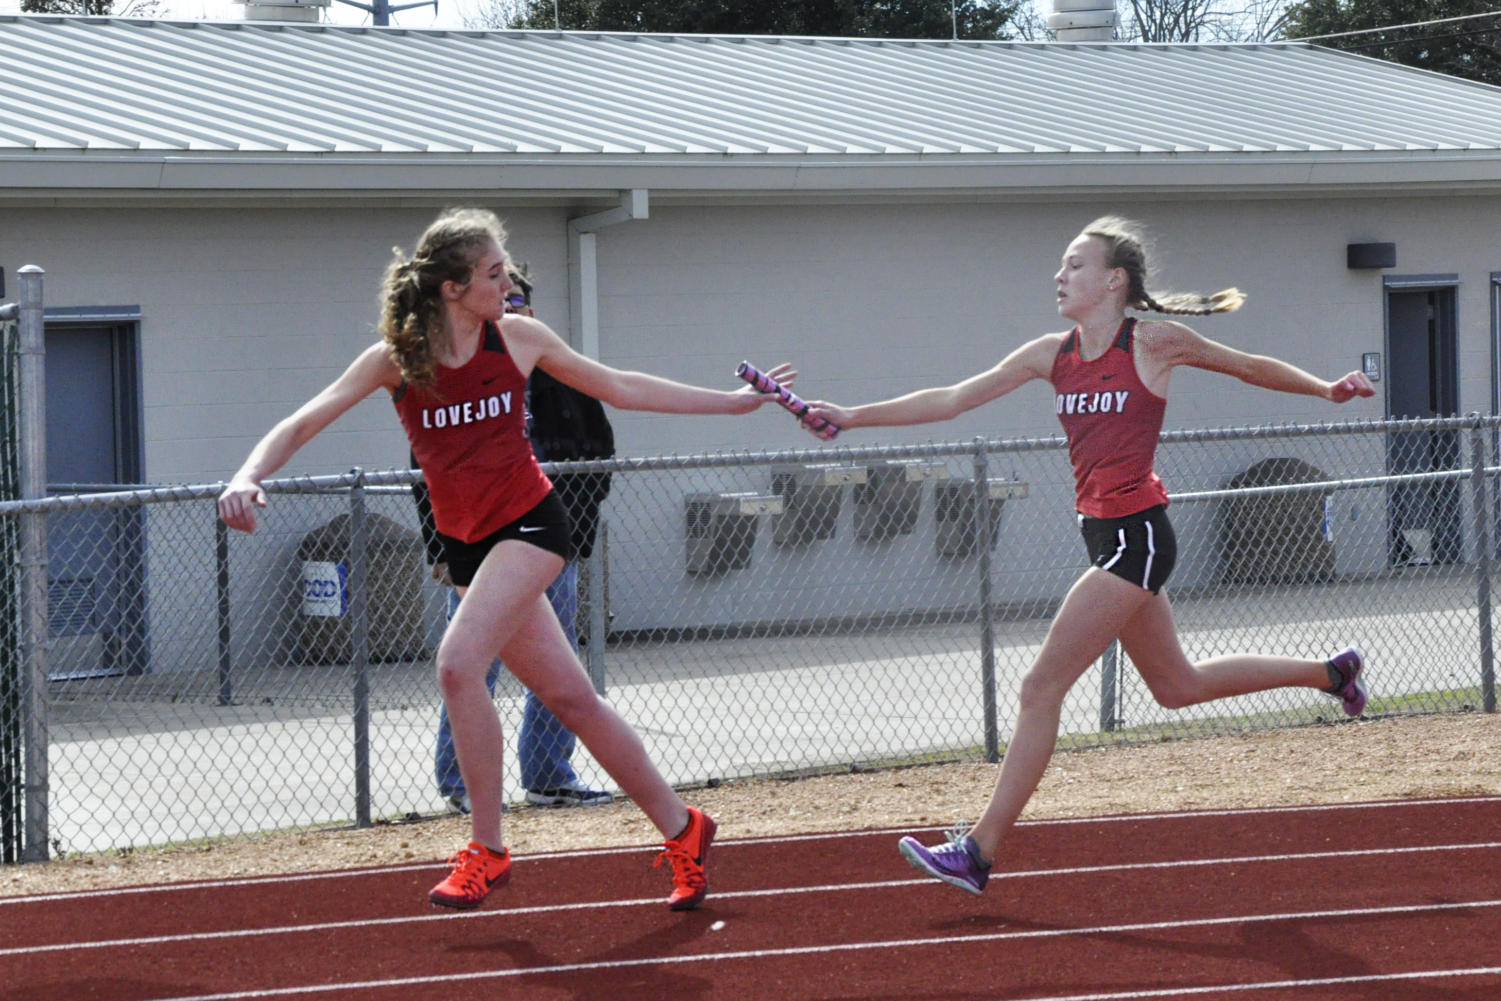 Freshmen Katie Armstrong and Lakin Hockersmith exchange the baton in the 4x200 m relay.